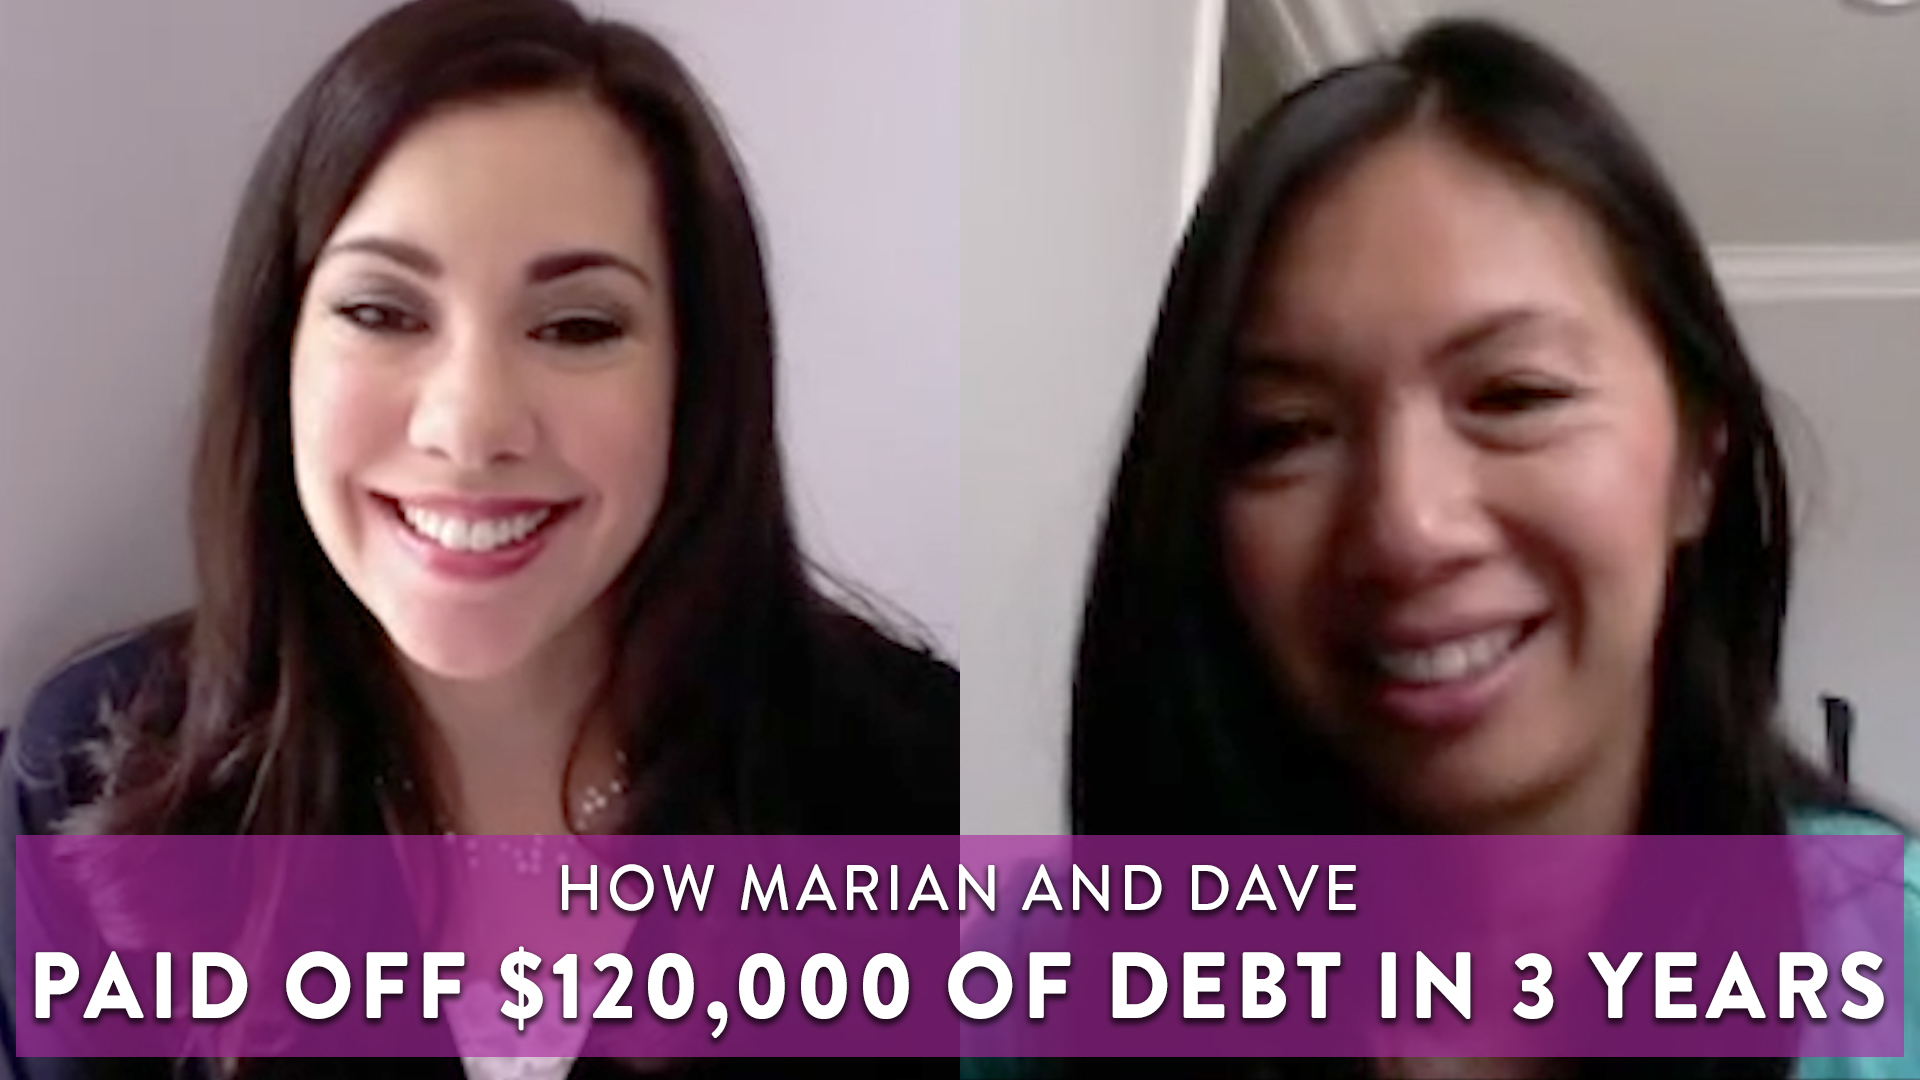 How Marian and Dave Paid Off $120,000 of Debt in 3 Years!